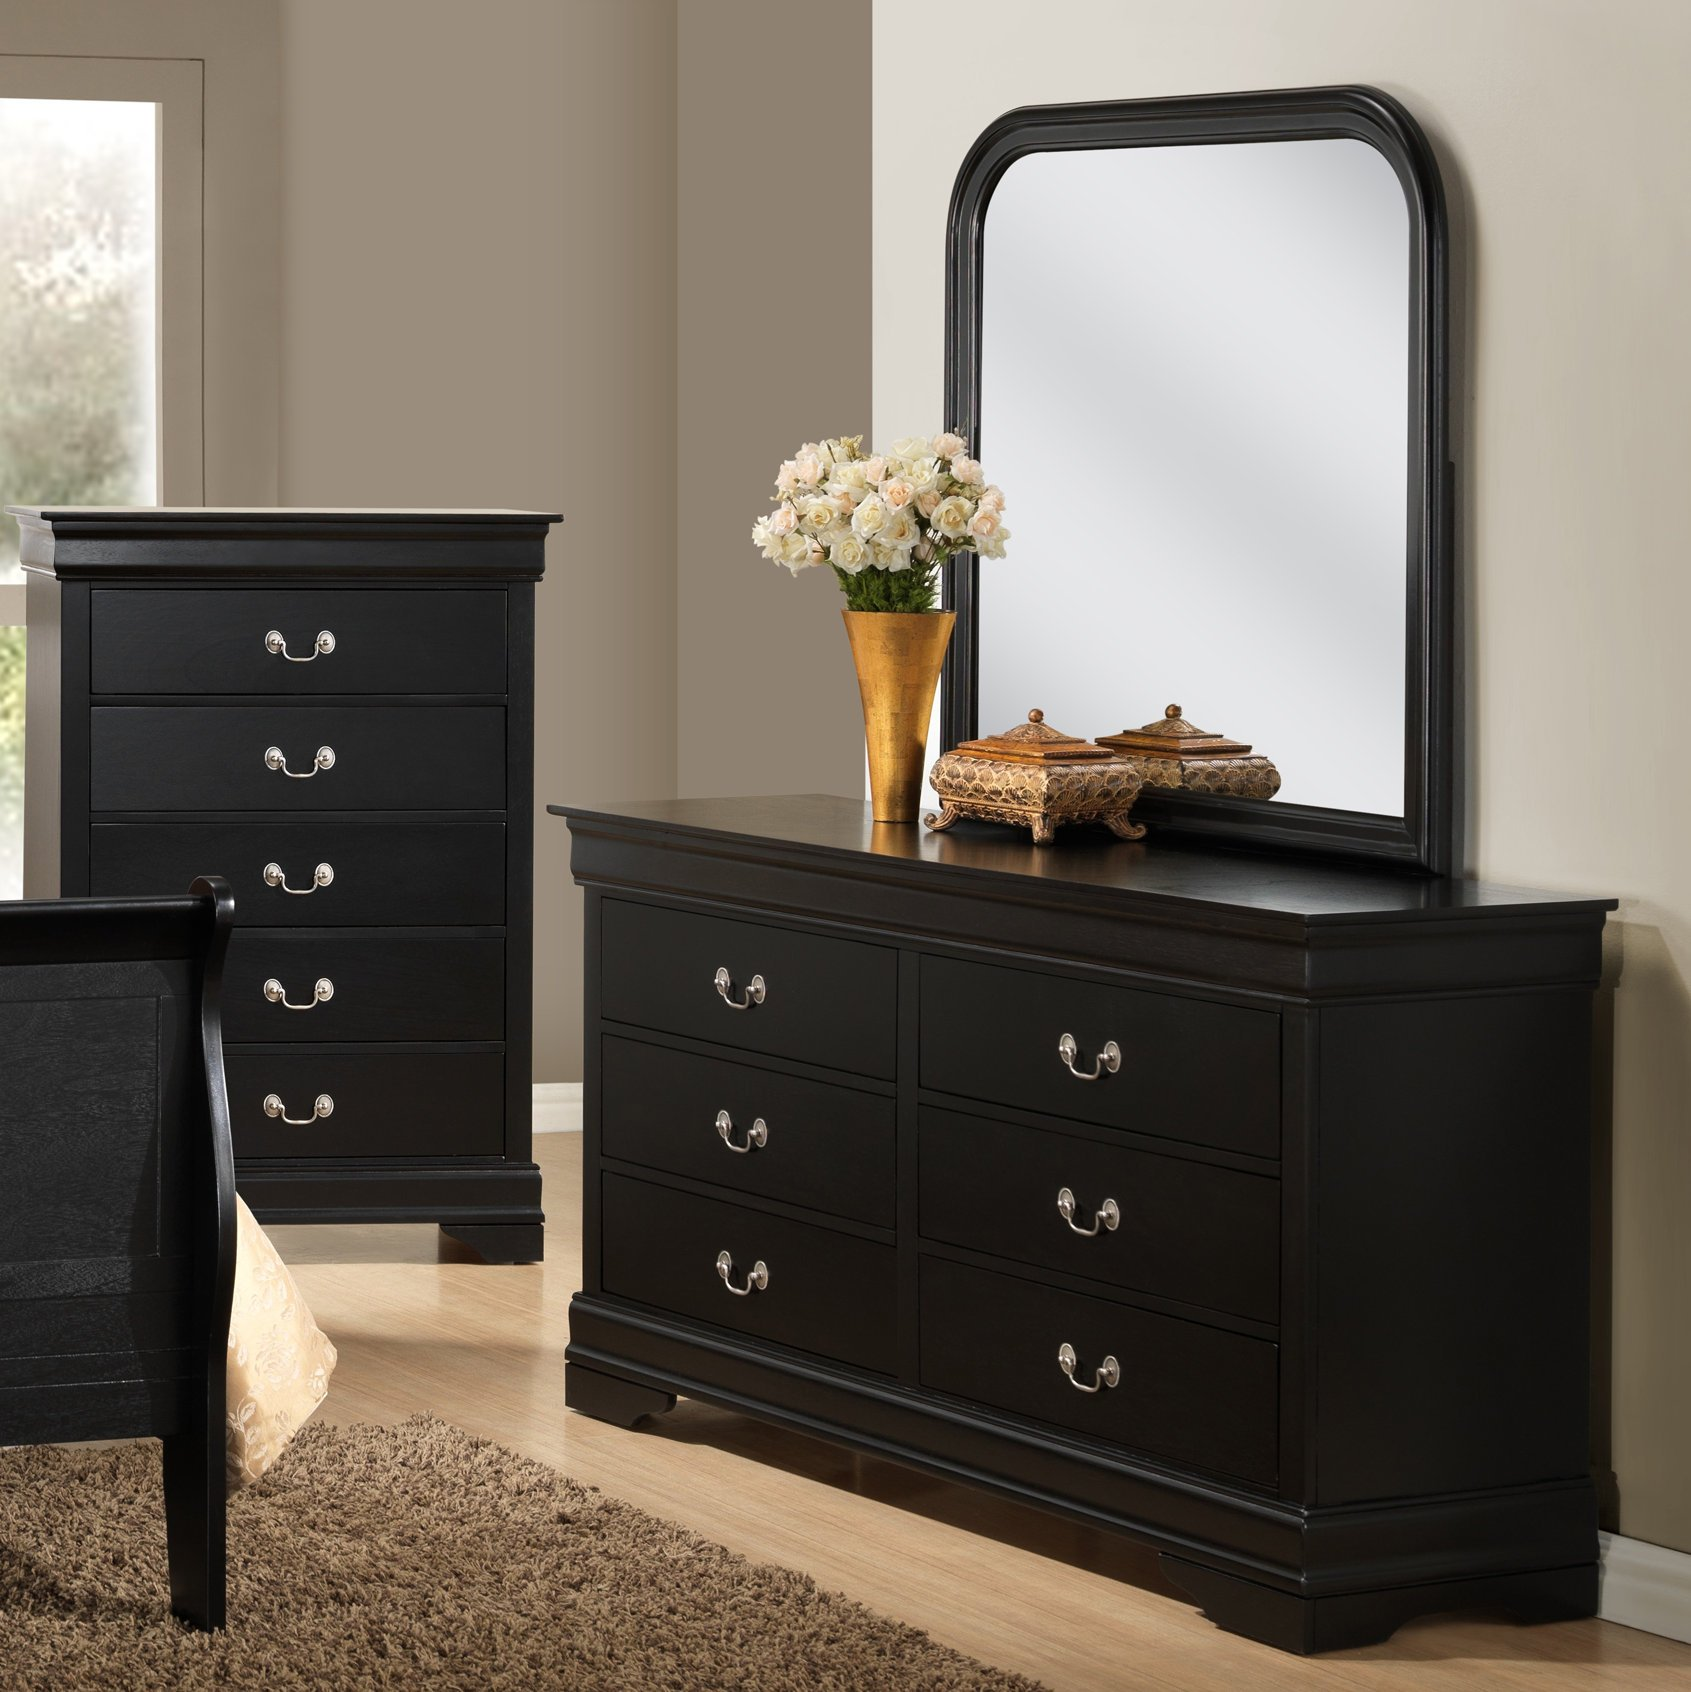 Roundhill Furniture Isony 594 Louis Philippe Style Wood Dresser with Mirror, Black